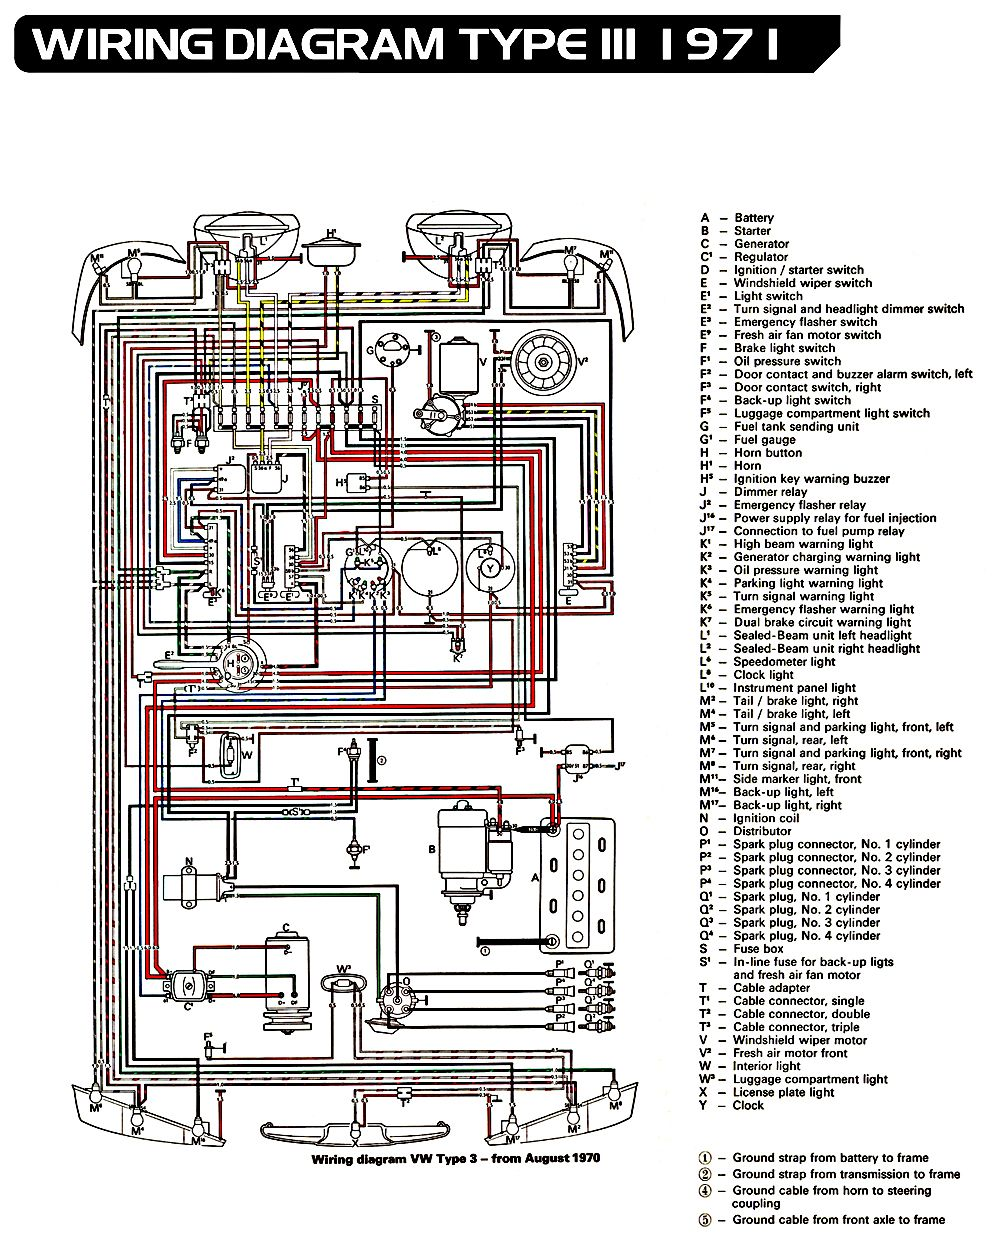 1971 type 3 vw wiring diagram so simple compared to a modern ecu rh pinterest com VW Bug Wiring-Diagram VW Bug Wiring-Diagram